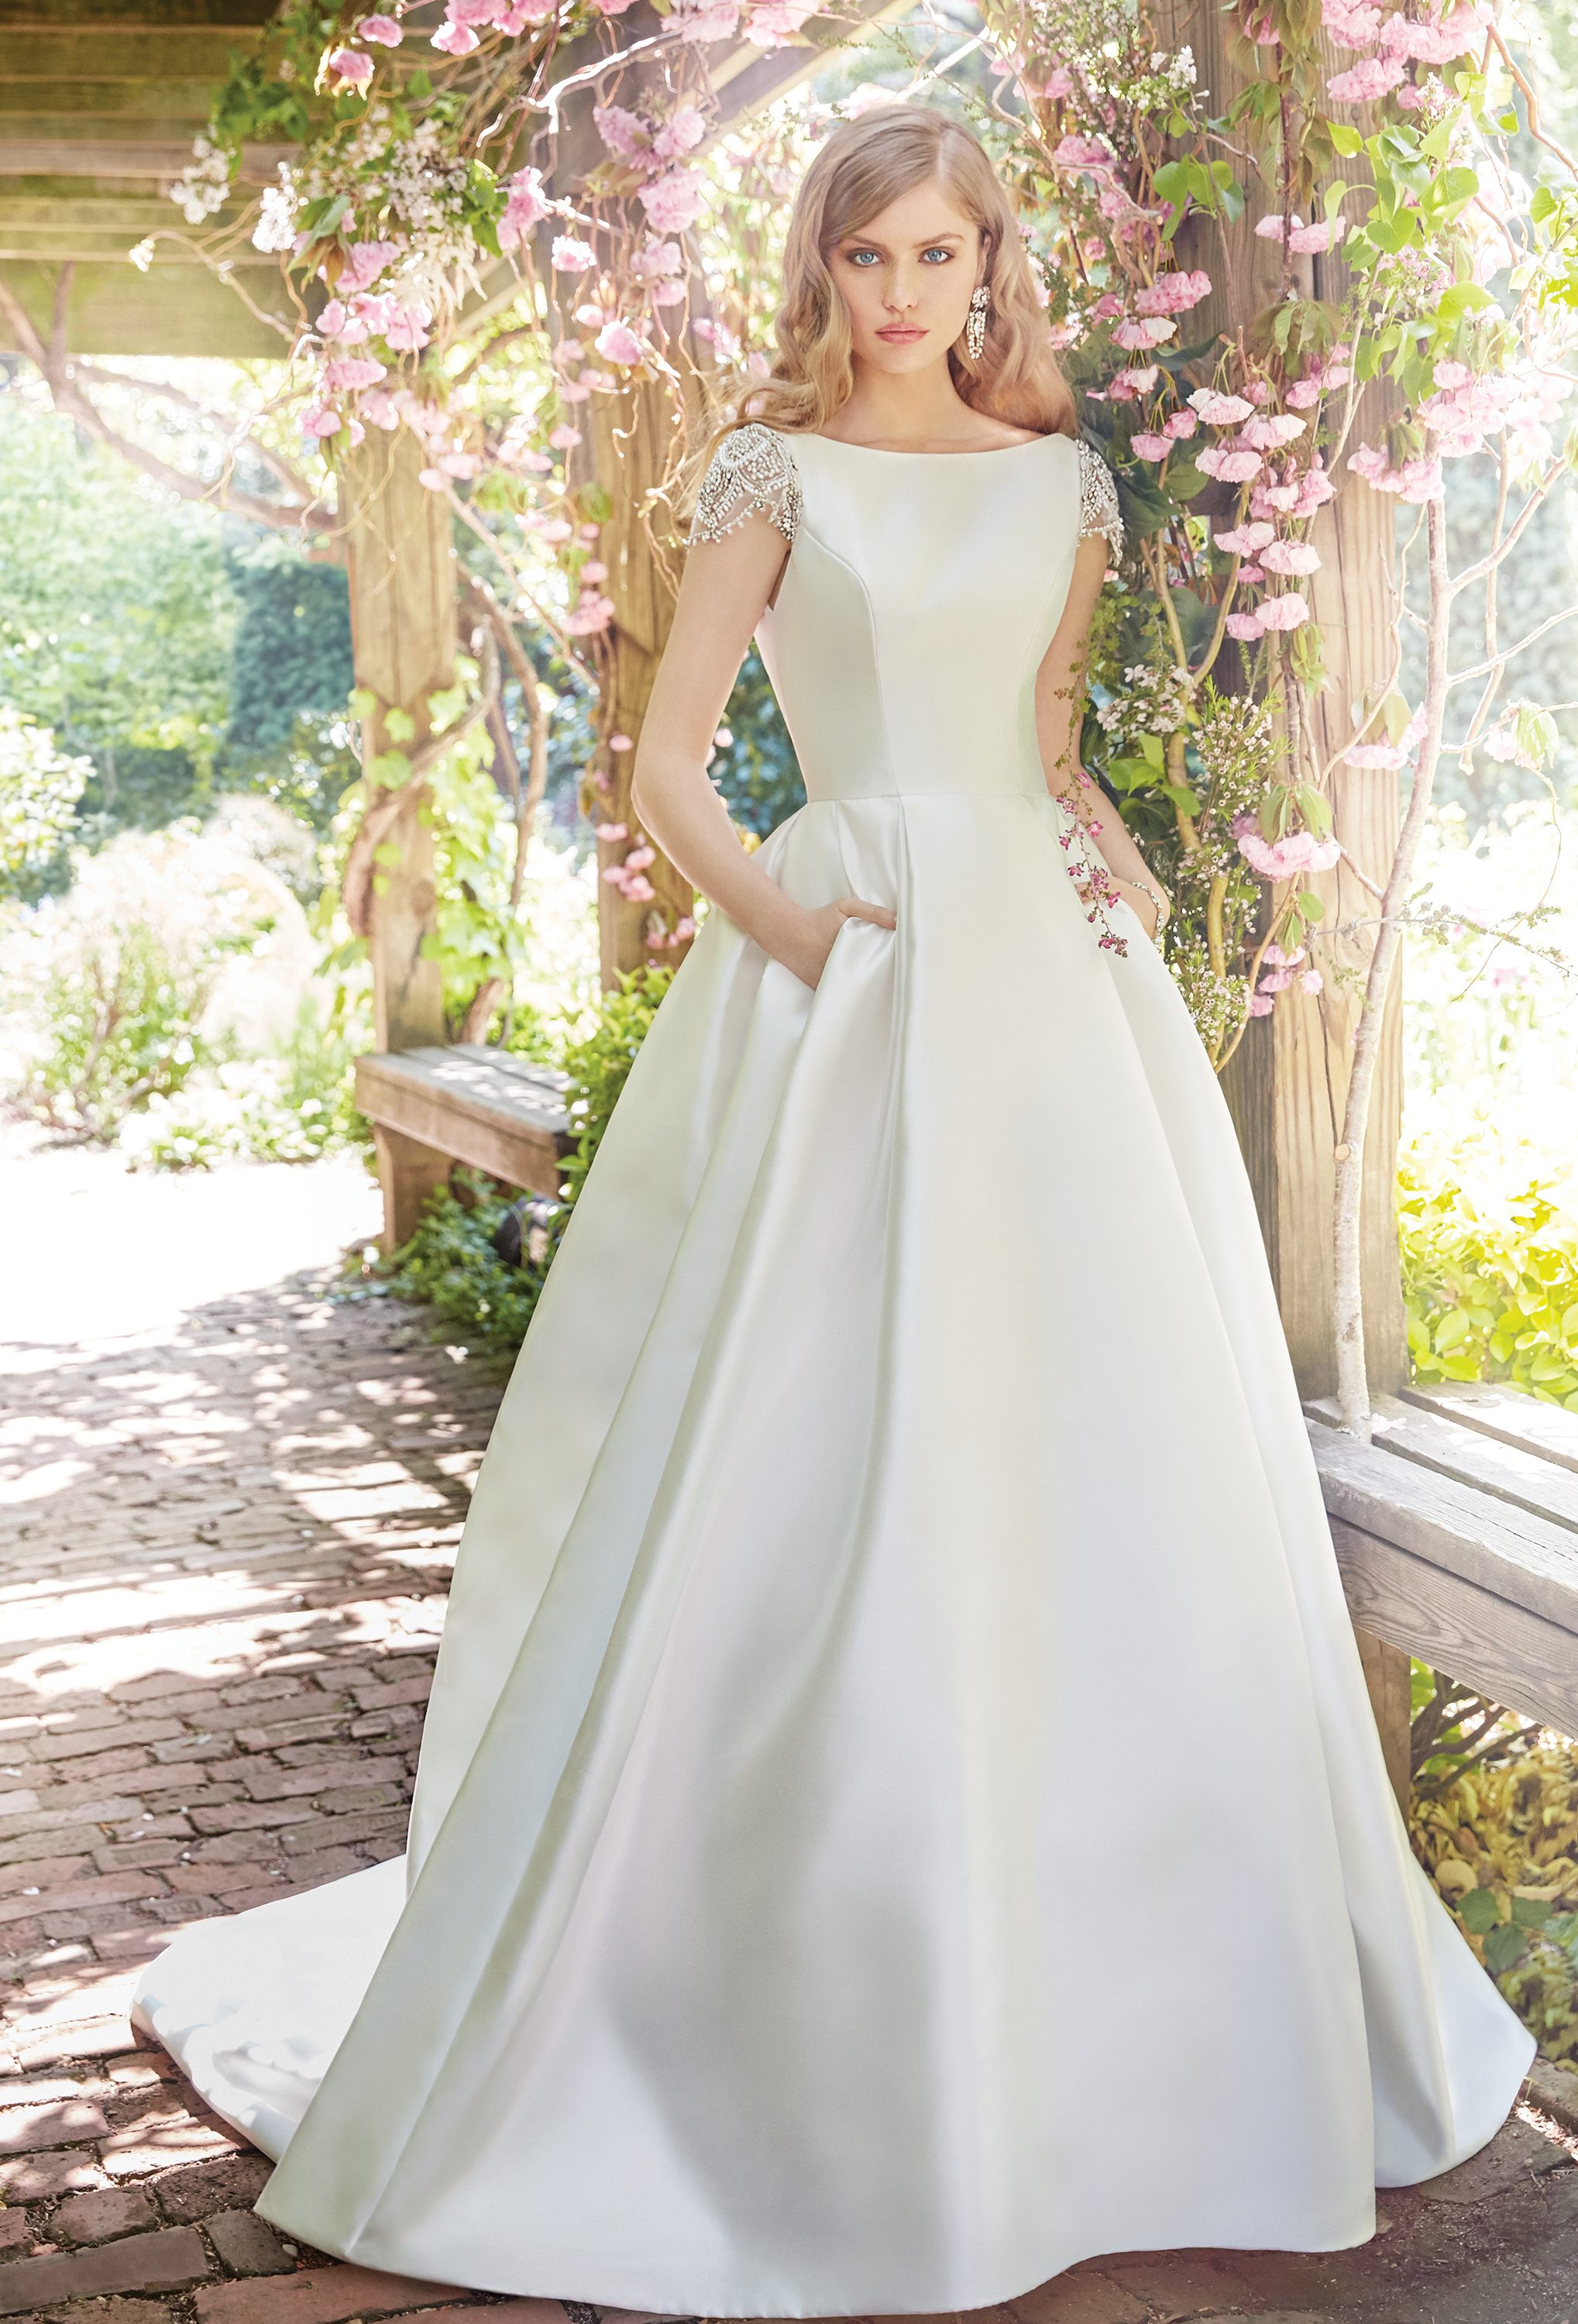 alvina-valenta-bridal-fall-2016-style-9658_7 http://itgirlweddings.com/fall-2016-alvina-valenta-wedding-collection/